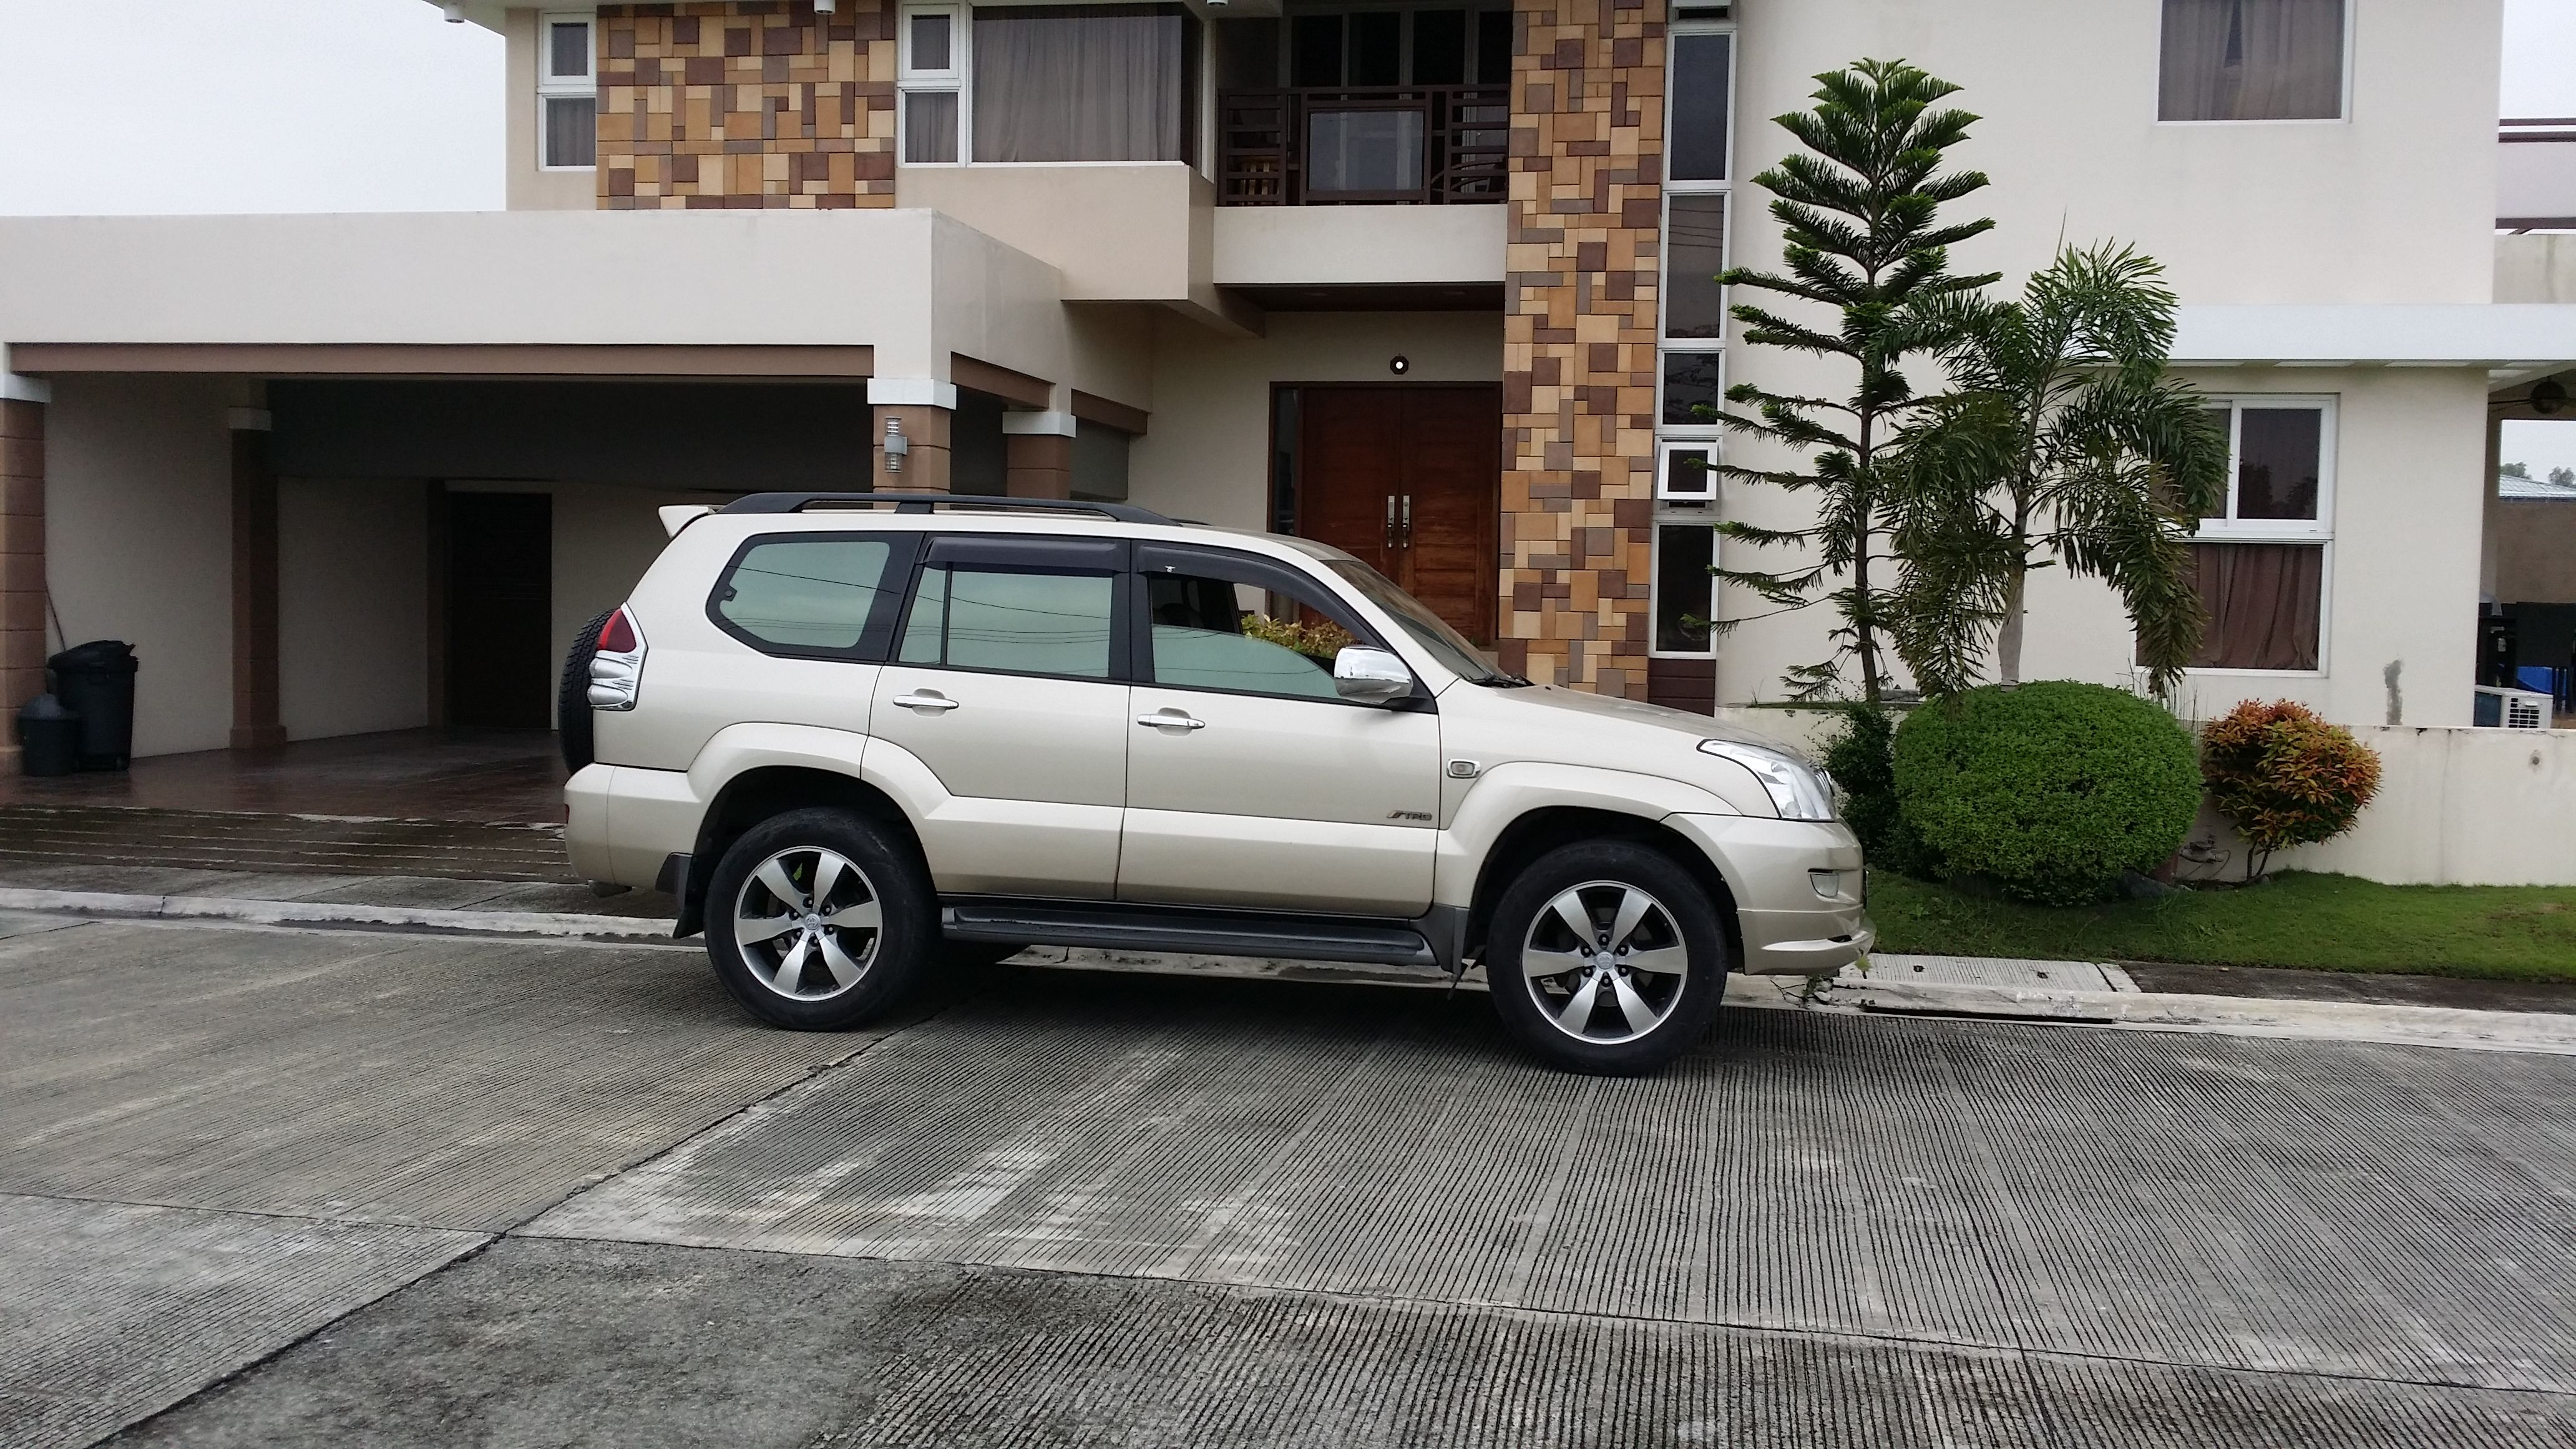 Prado 120 with 20 inch oem toyota rims and customize front spoiler